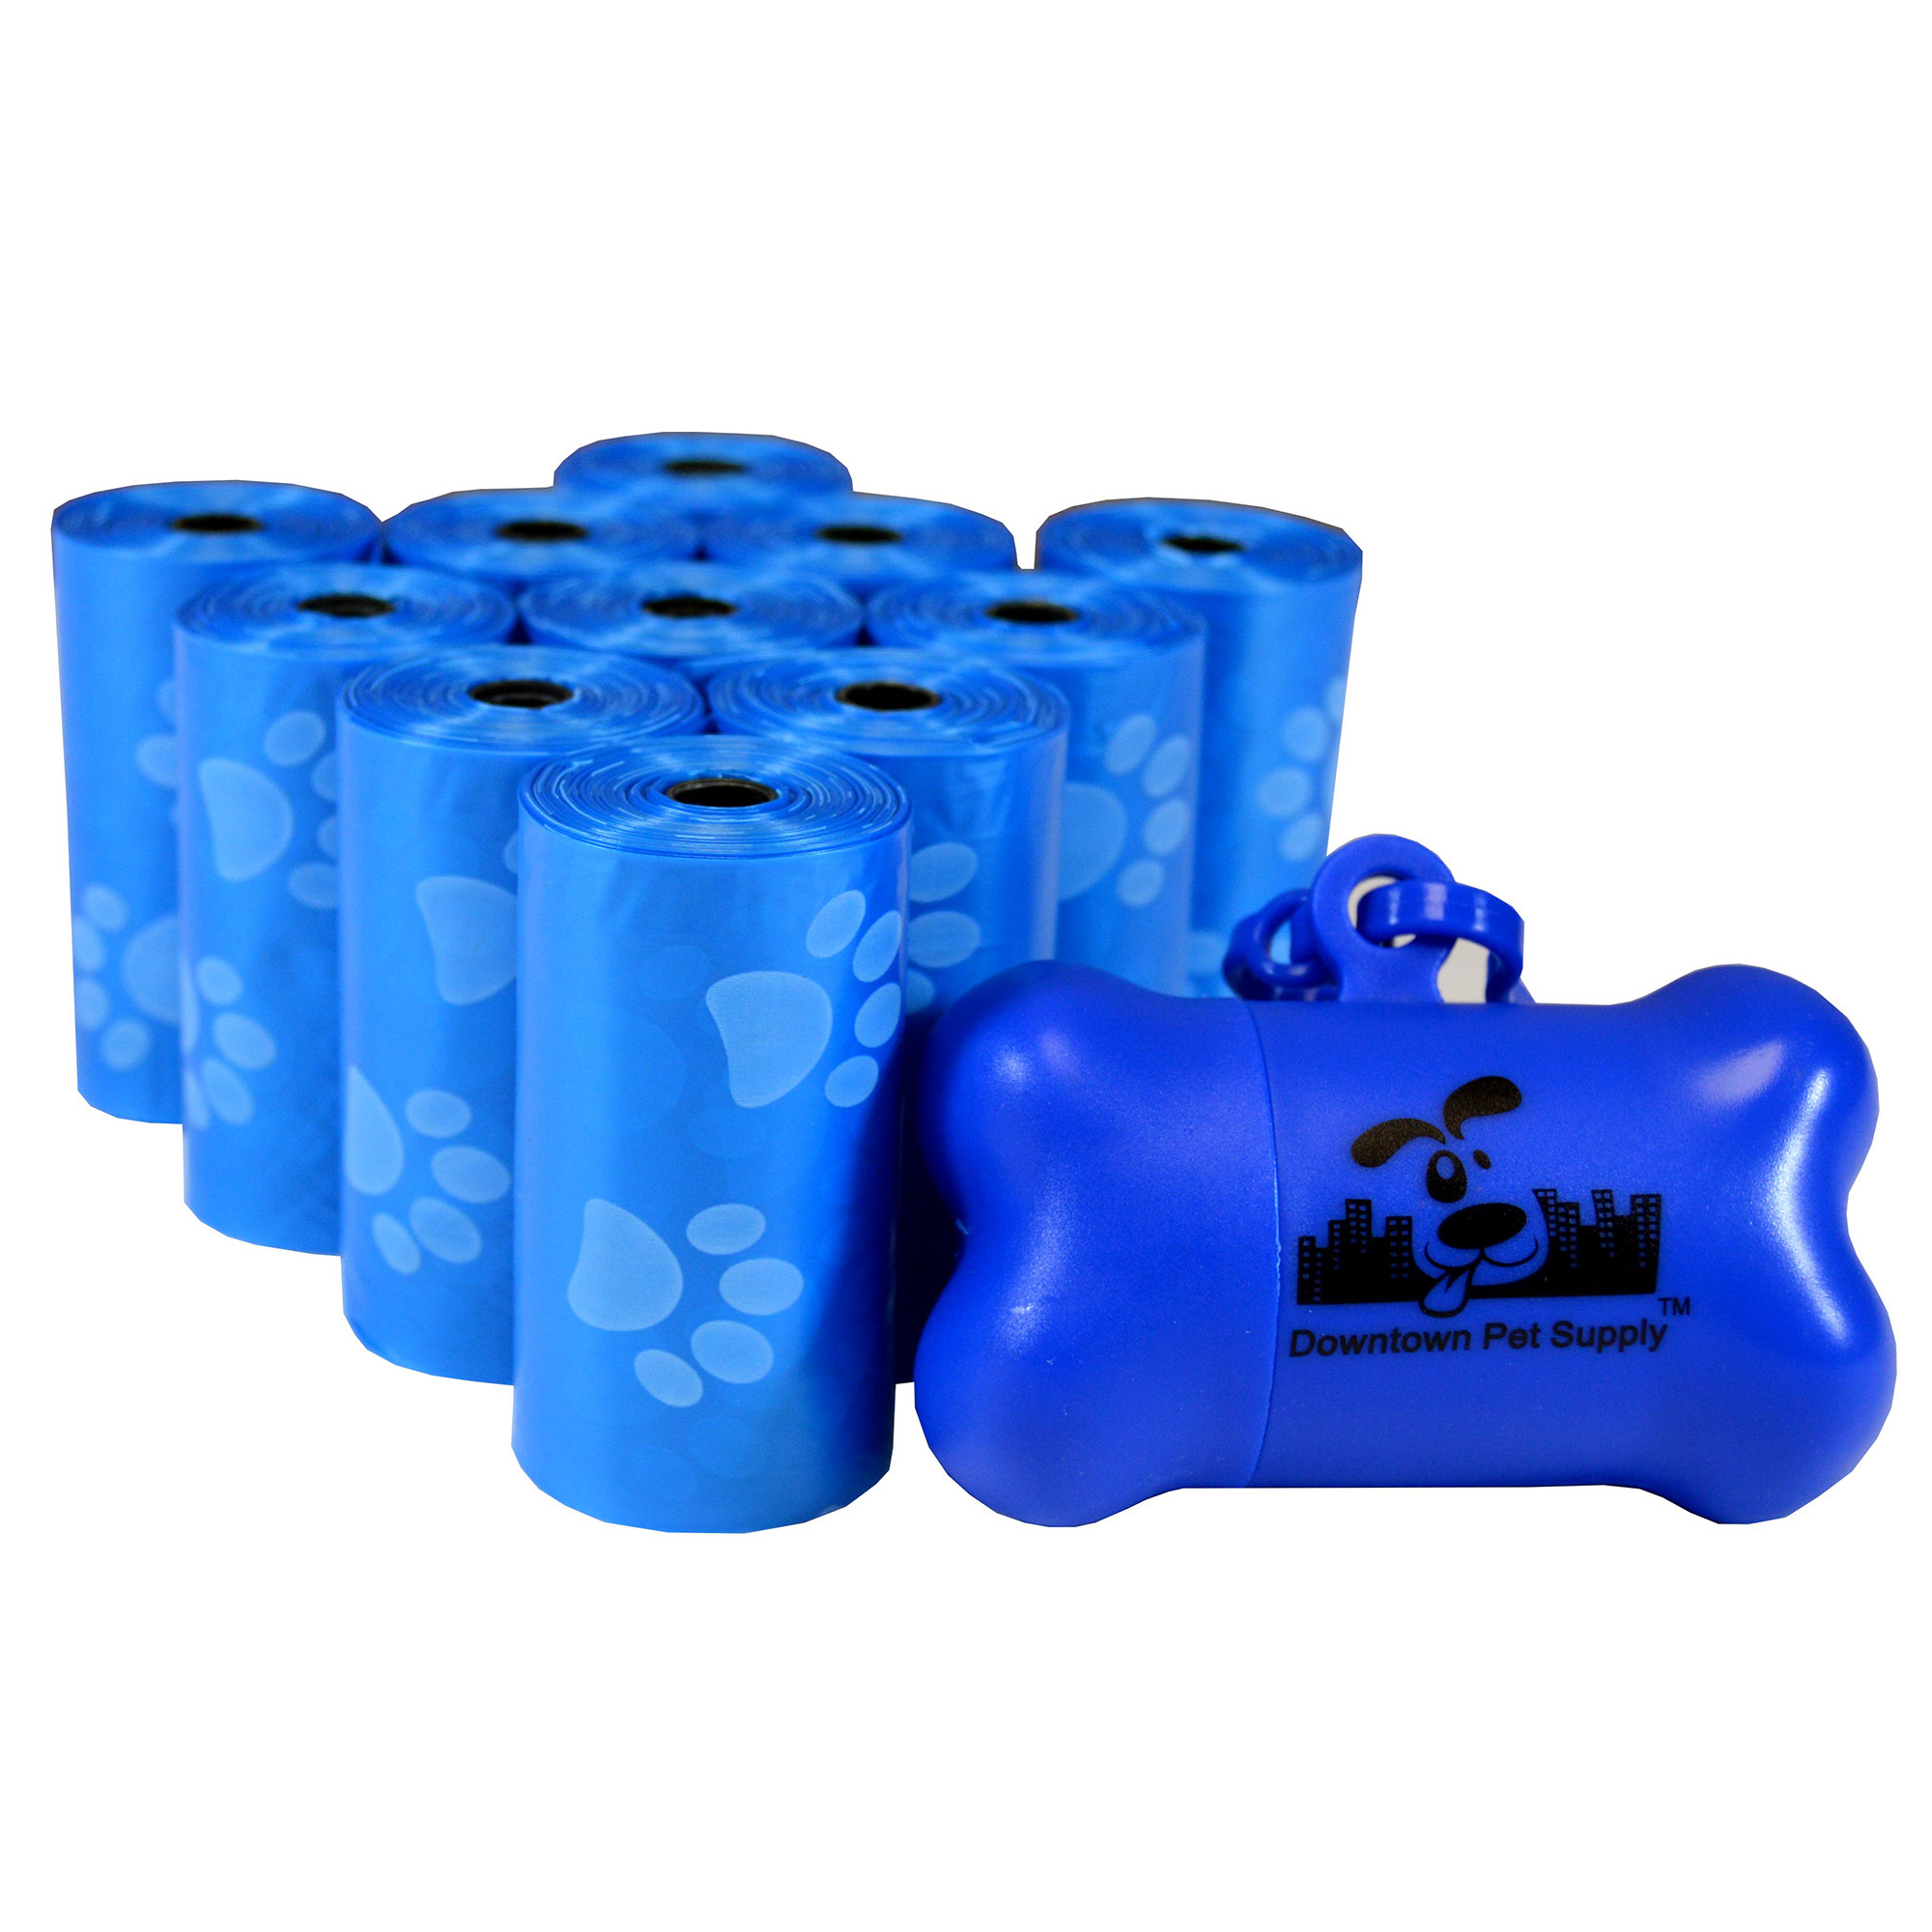 Dog Pet Waste Poop Bags, Variety Colors, Bulk Sizes, (Color: Blue with Paw Prints) (Size 220 Bags) + FREE Bone Dispenser, by Downtown Pet Supply